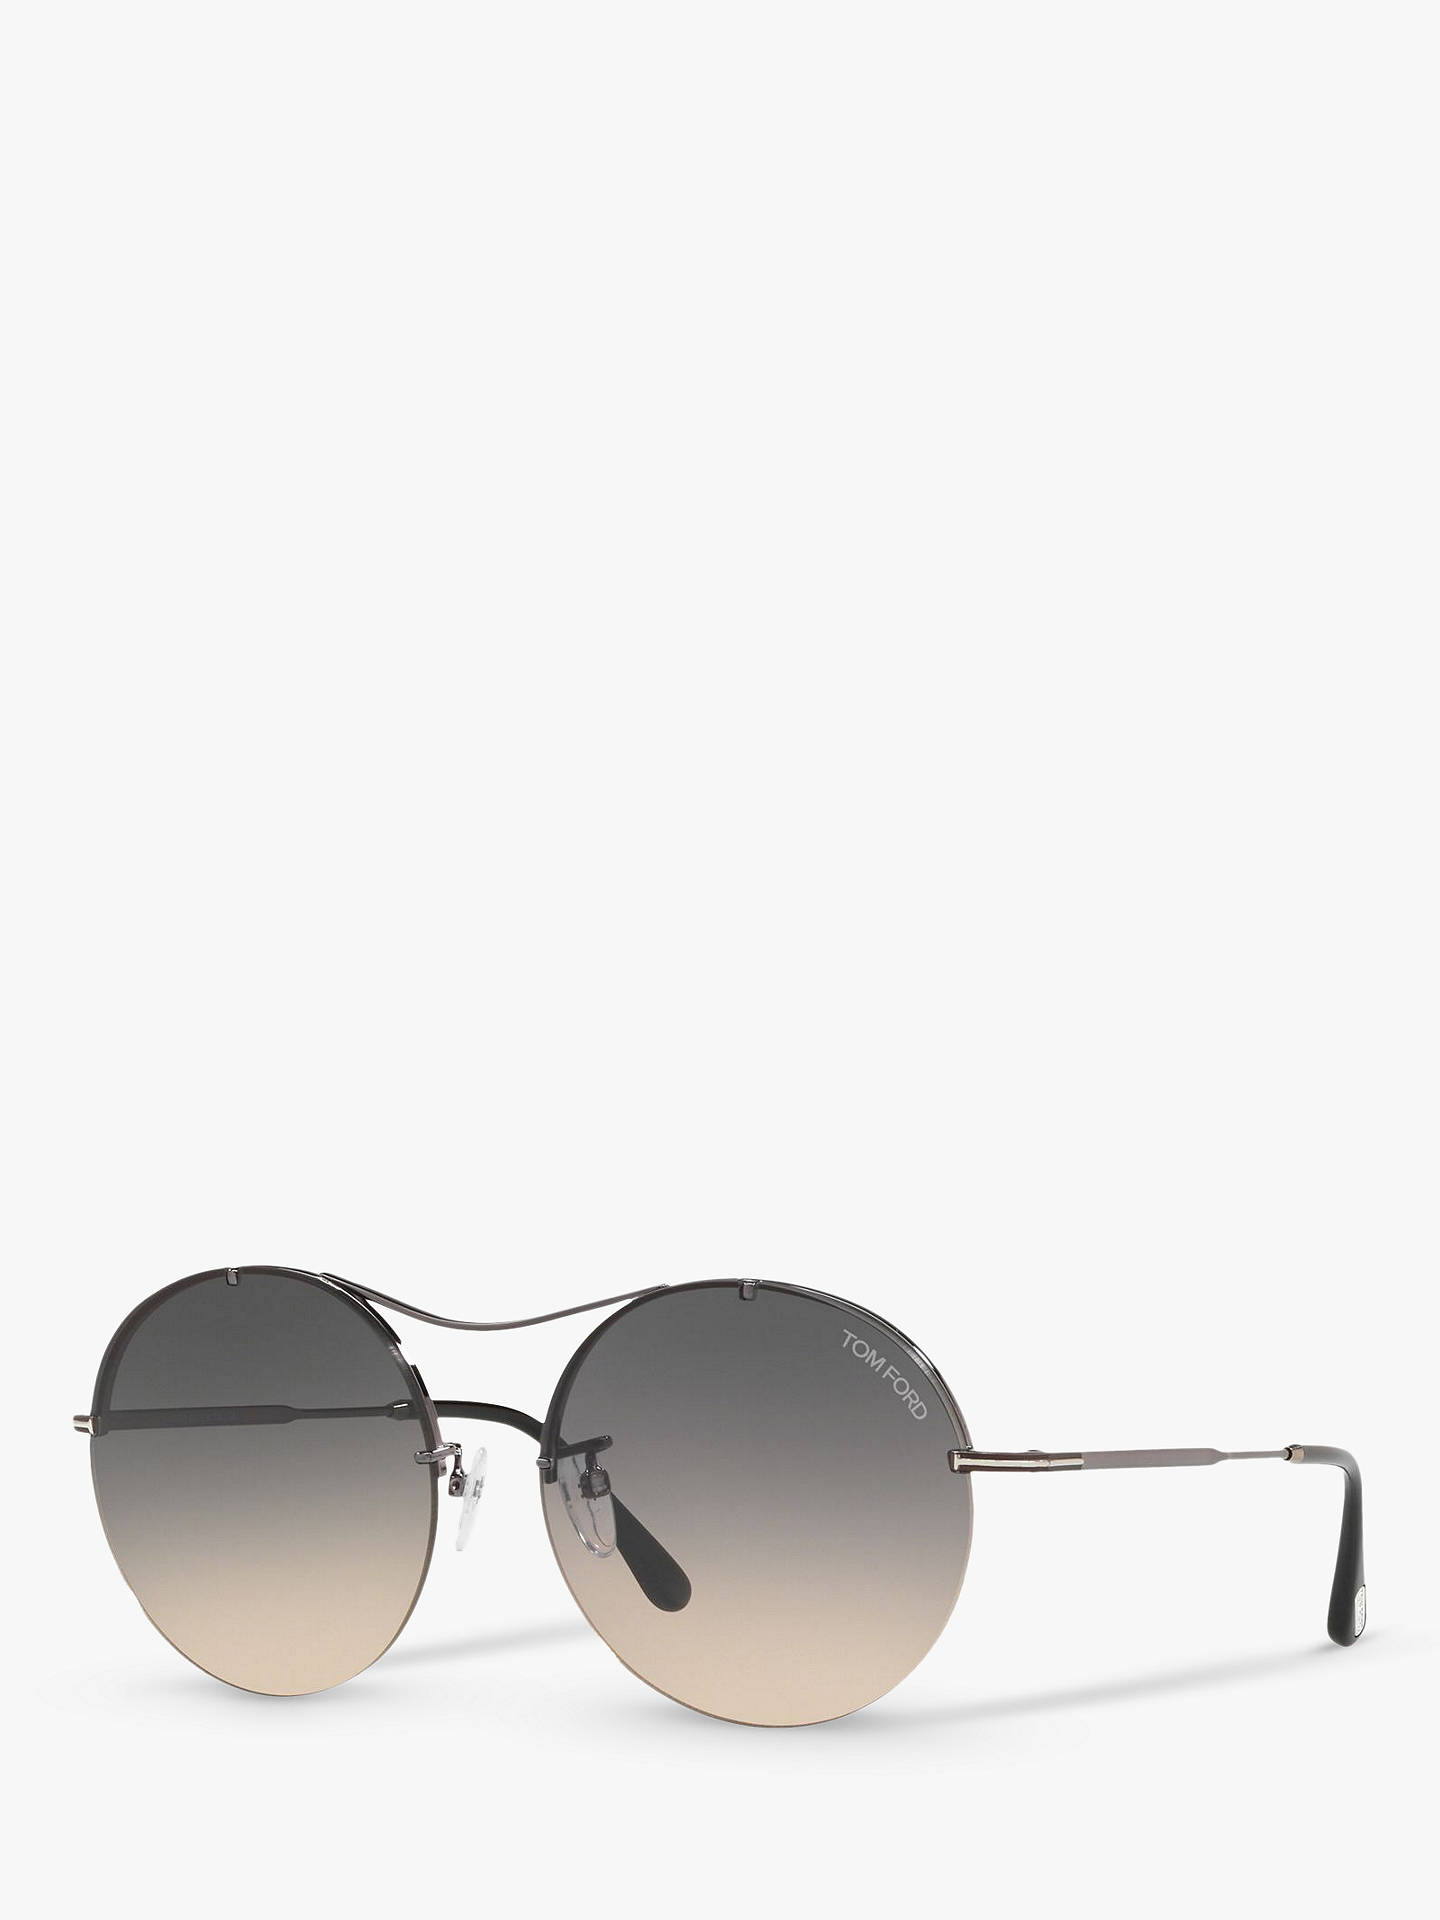 963133f47a TOM FORD FT0565 Veronique-02 Round Sunglasses at John Lewis   Partners